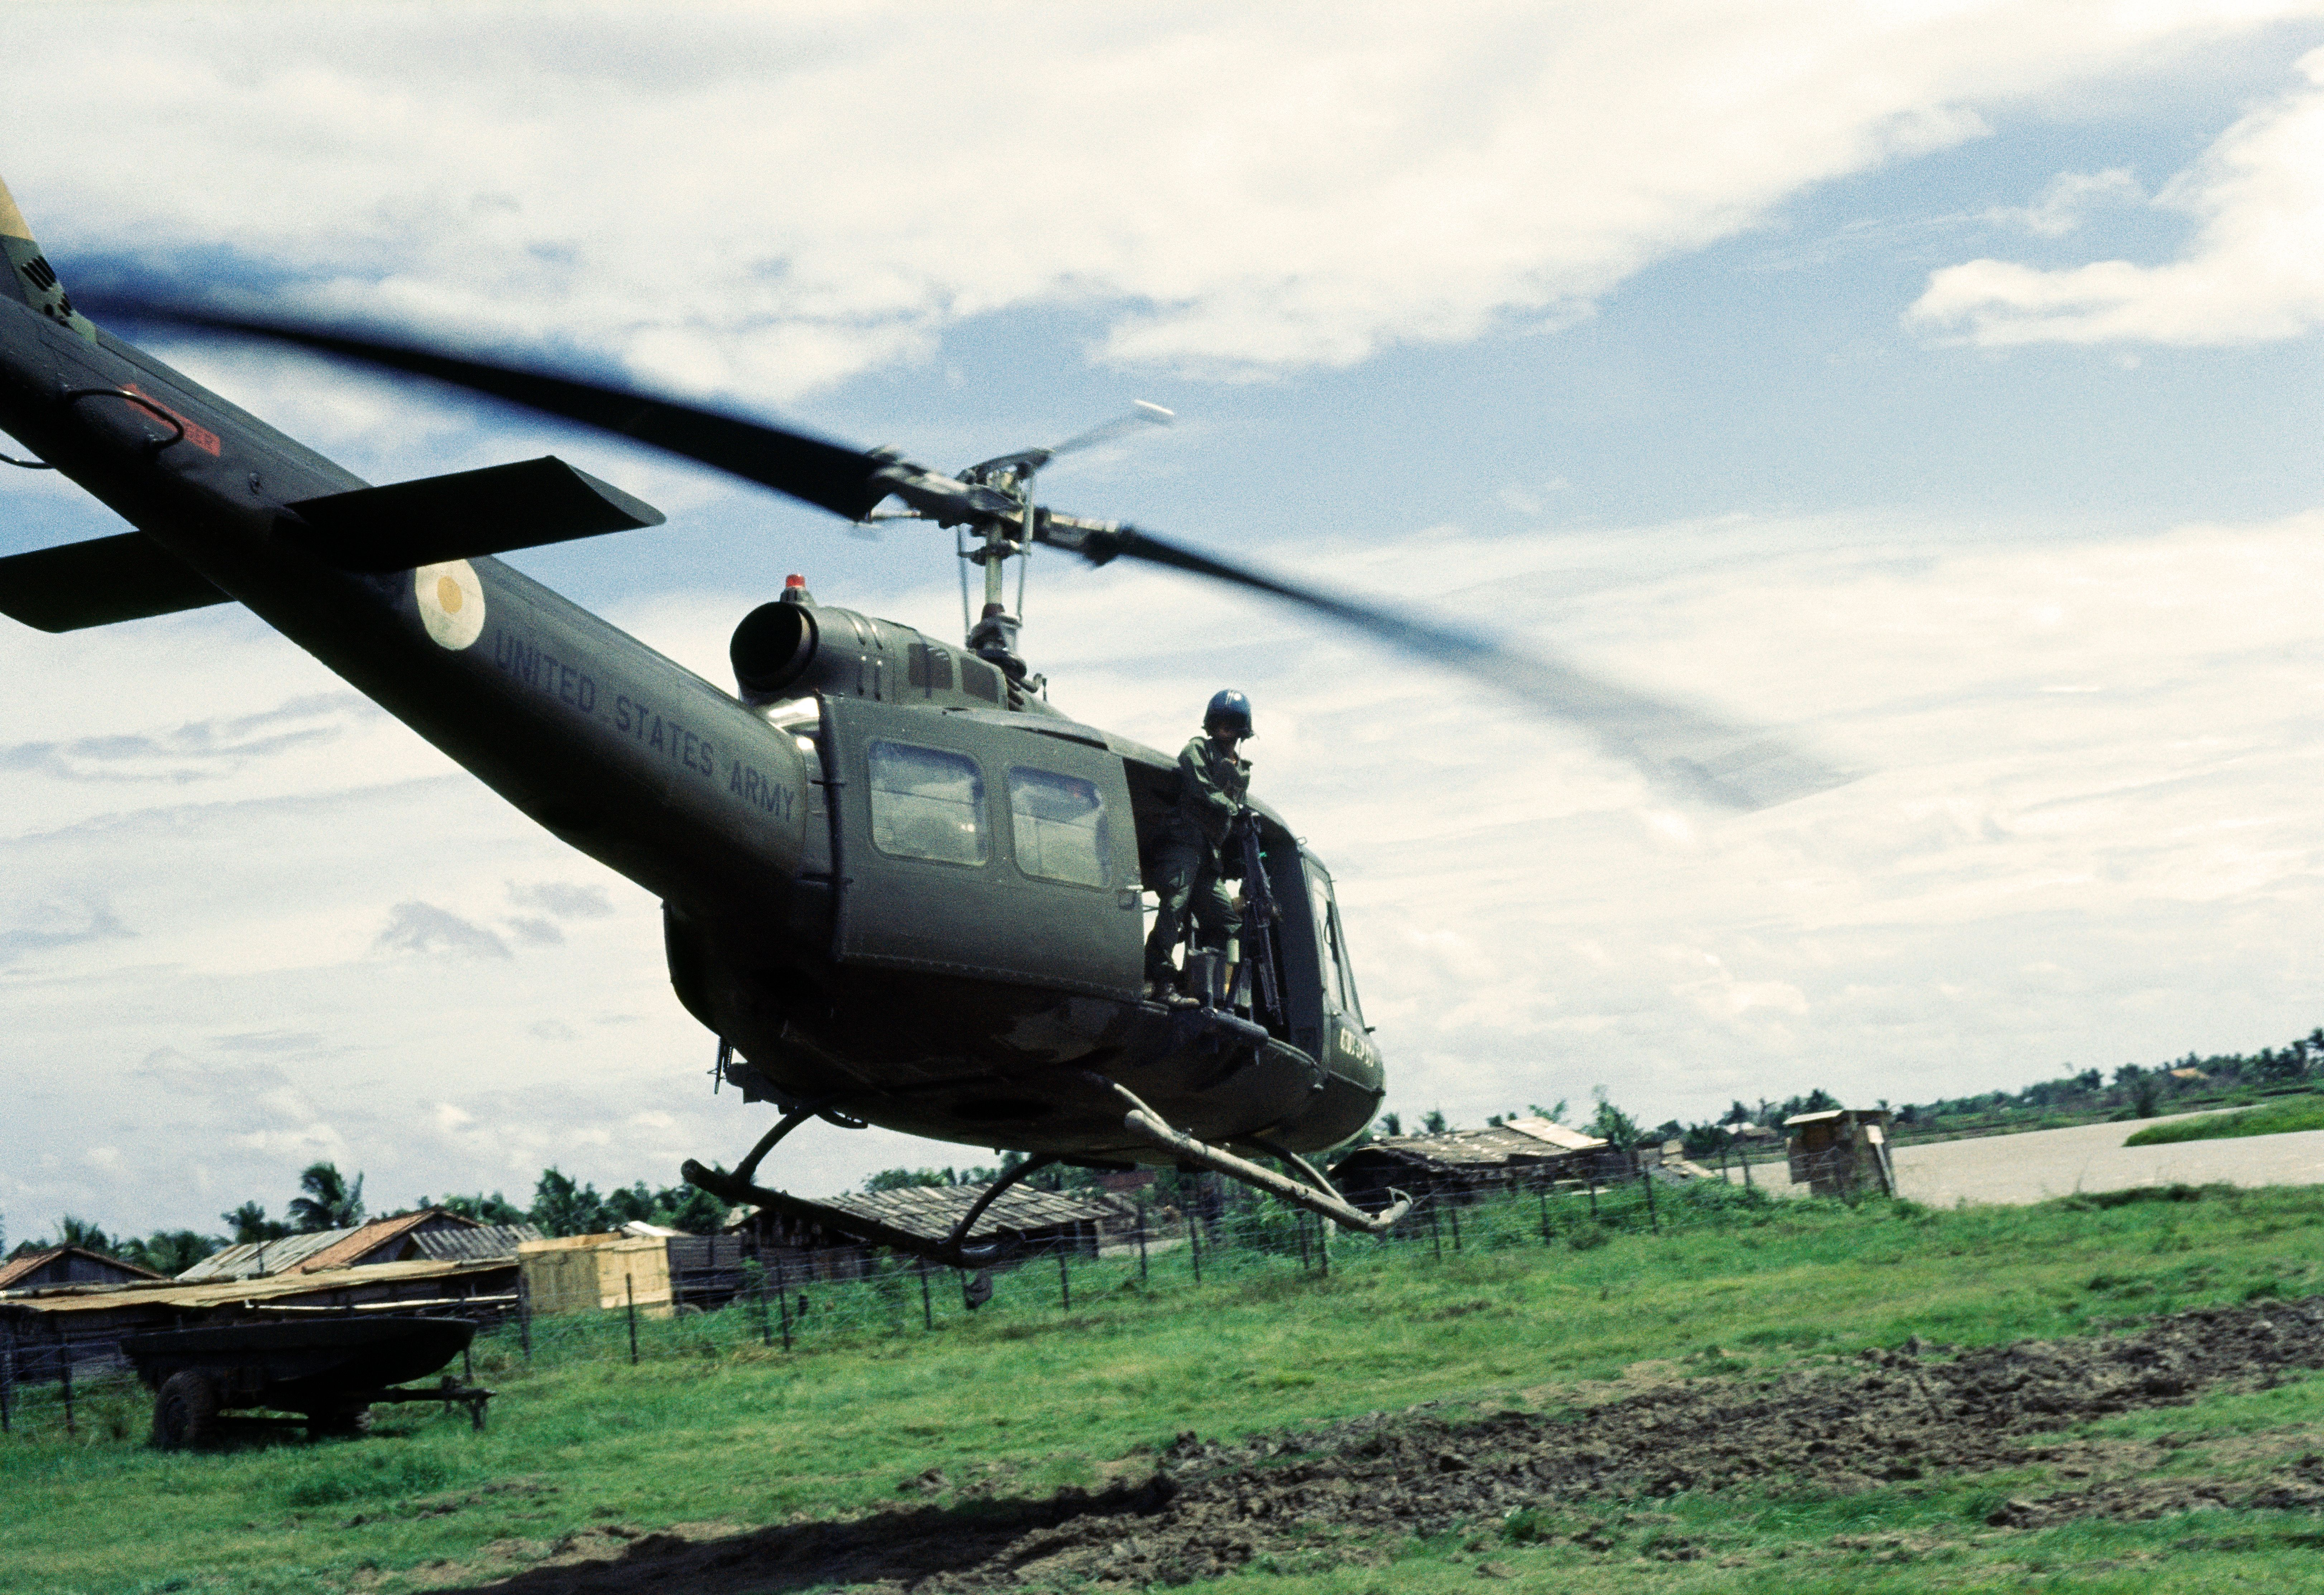 July 1967 - A door gunner surveys the area from the open door of his Huey helicopter as they fly close to the ground in the Mekong Delta during the Vietnam war. (Photo by ANDREW HOLBROOKE/Corbis via Getty Images)